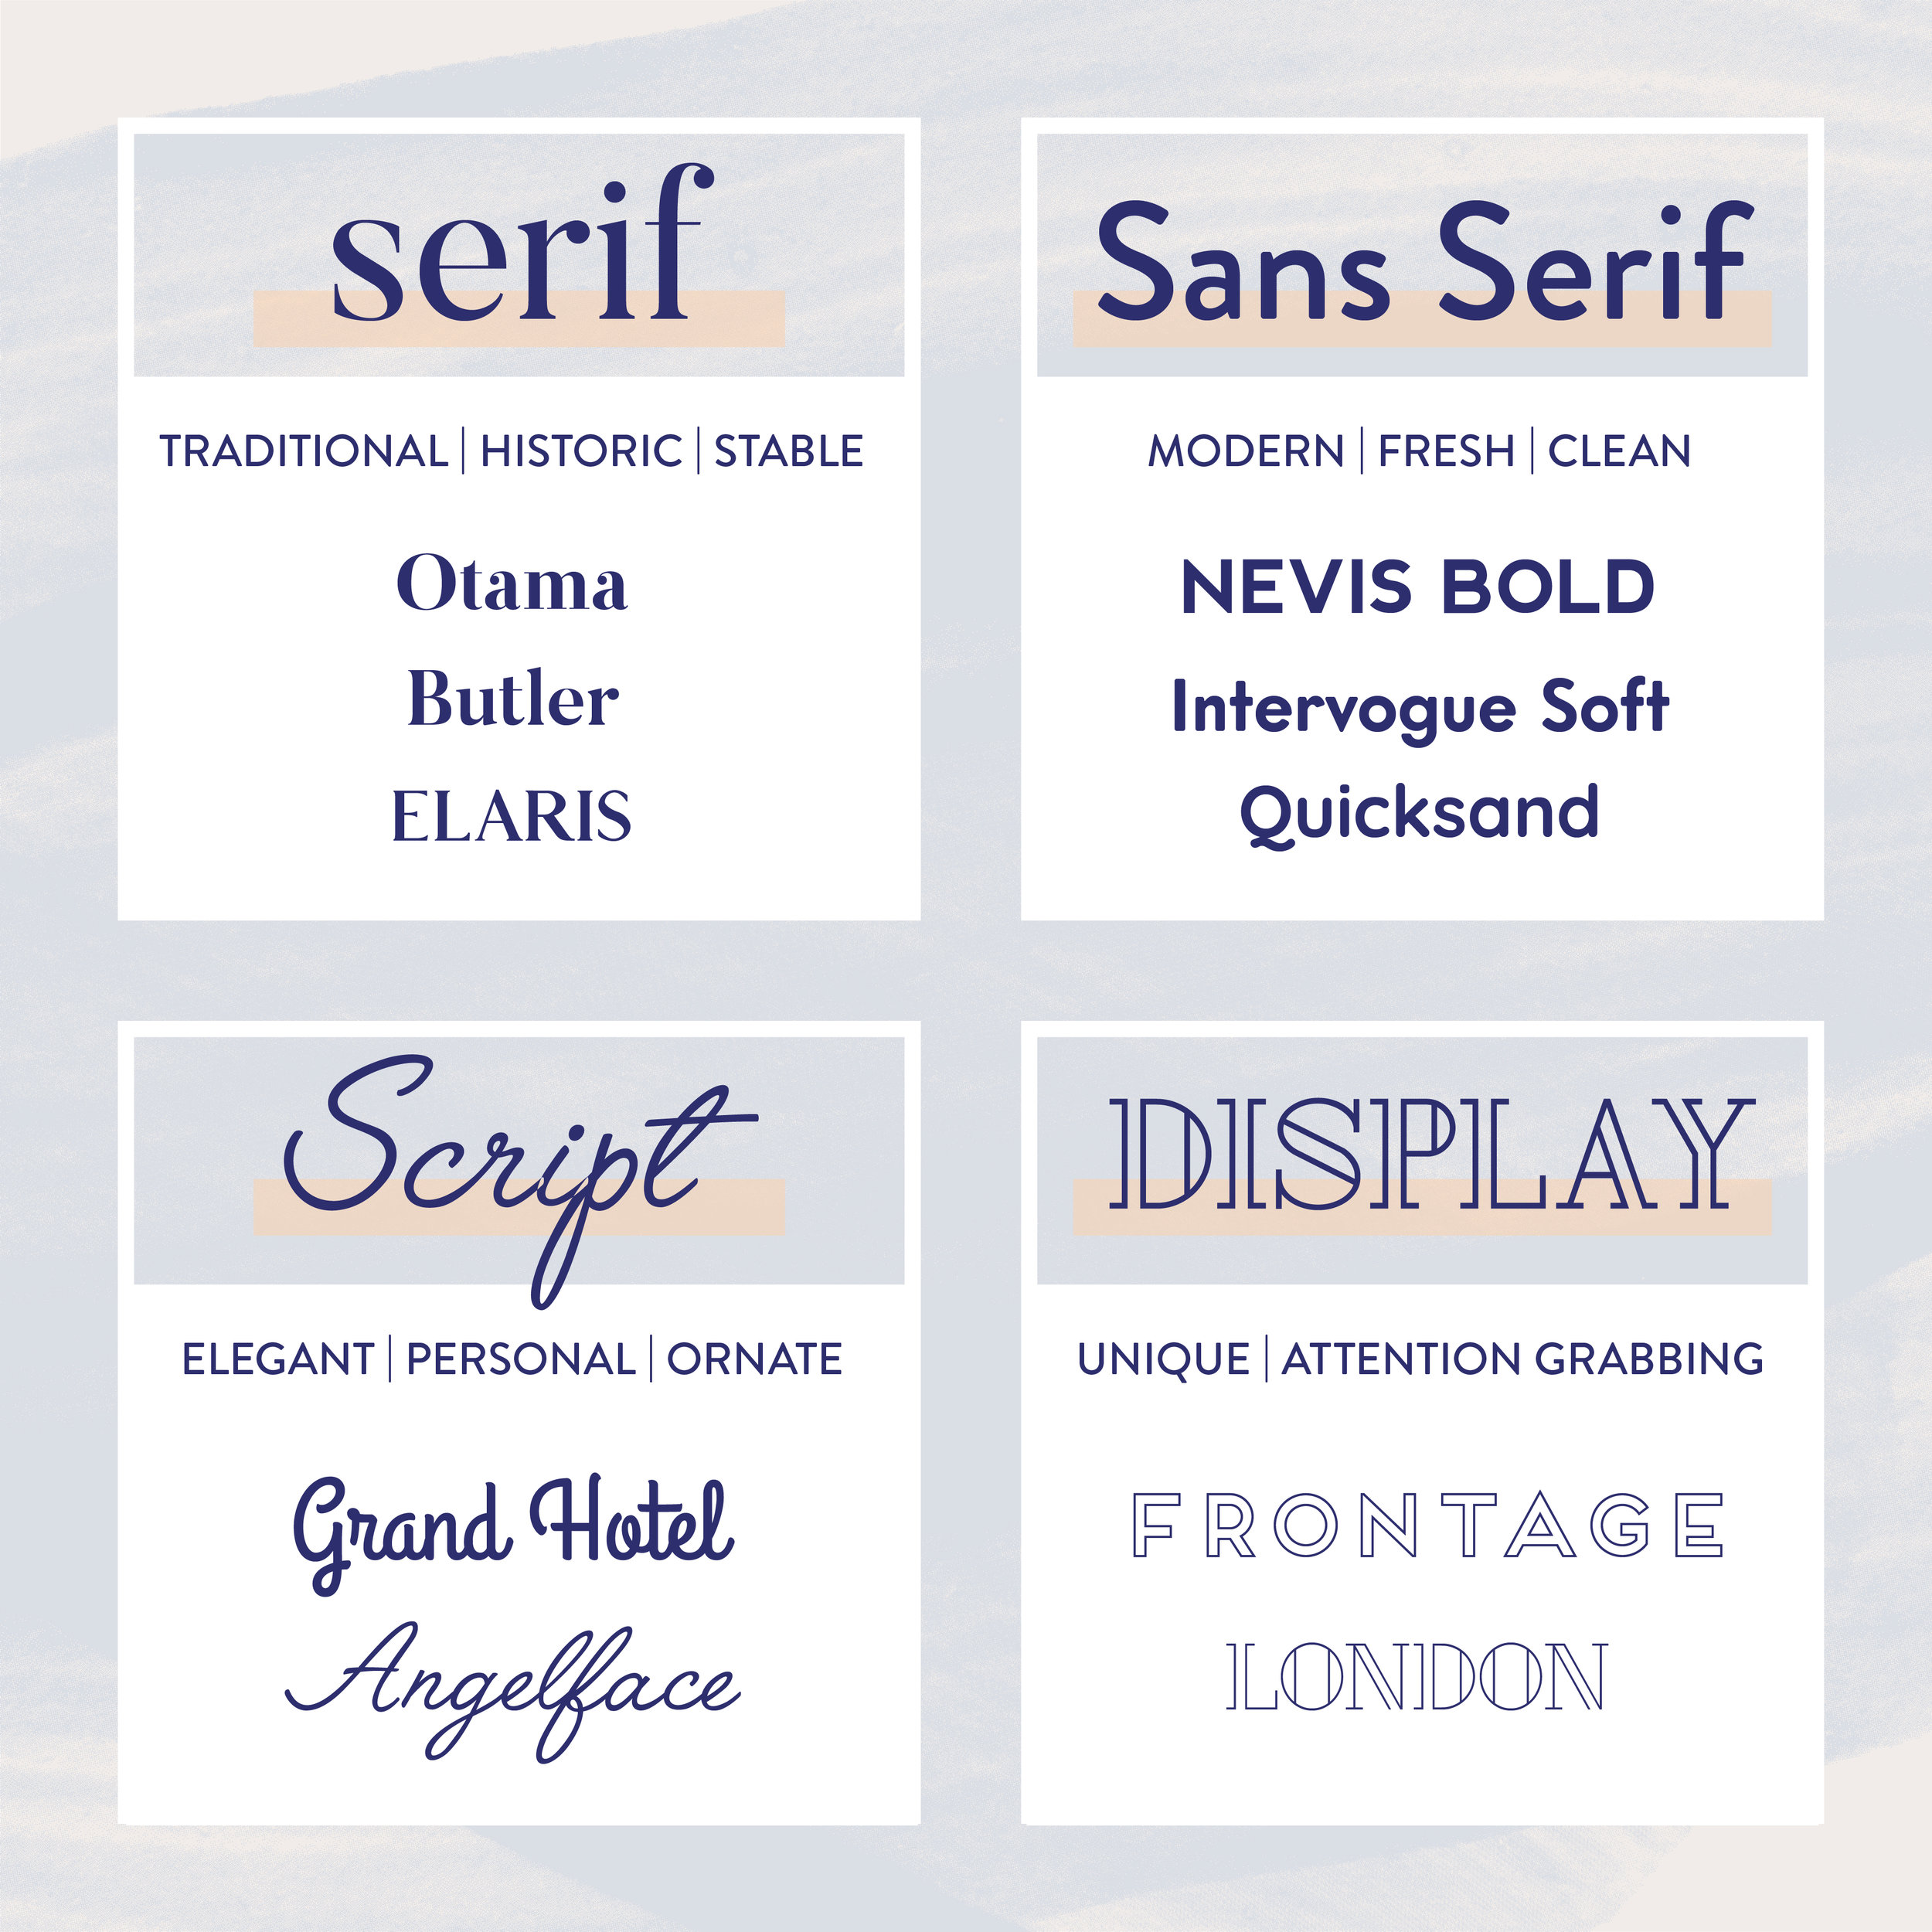 Do you know all the different types of fonts you can use in your brand? This blog post explains exactly what a font pairing is and when and how you should use them. This post also includes links to download all of them! Check them out and read more #freefonts #fontpairings #brandfonts #branding101 #branding #graphicdesigntips #fontcombinations #branding #graphicdesigner #brandconcept  #brandidentity  #brandingdesign #designprocess